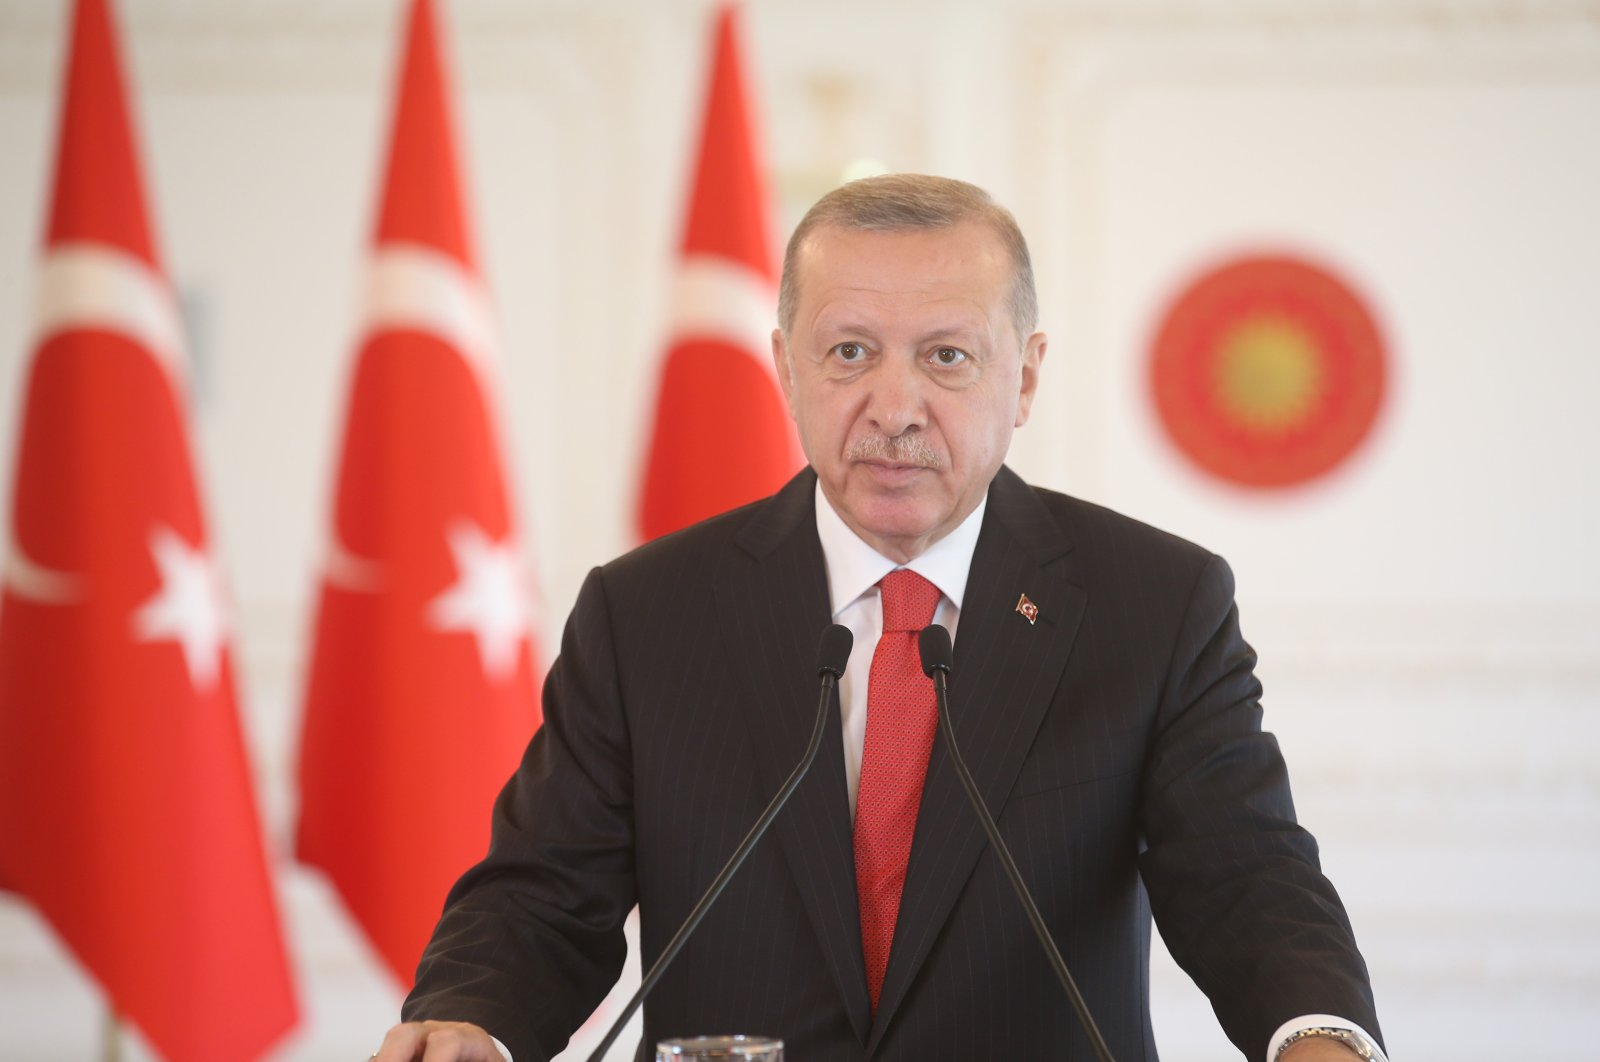 President Recep Tayyip Erdoğan speaks at the inauguration ceremony of a hydroelectric power plant in Turkey's northern province of Tokat, which he attends via videoconference, July 10, 2020. (IHA)